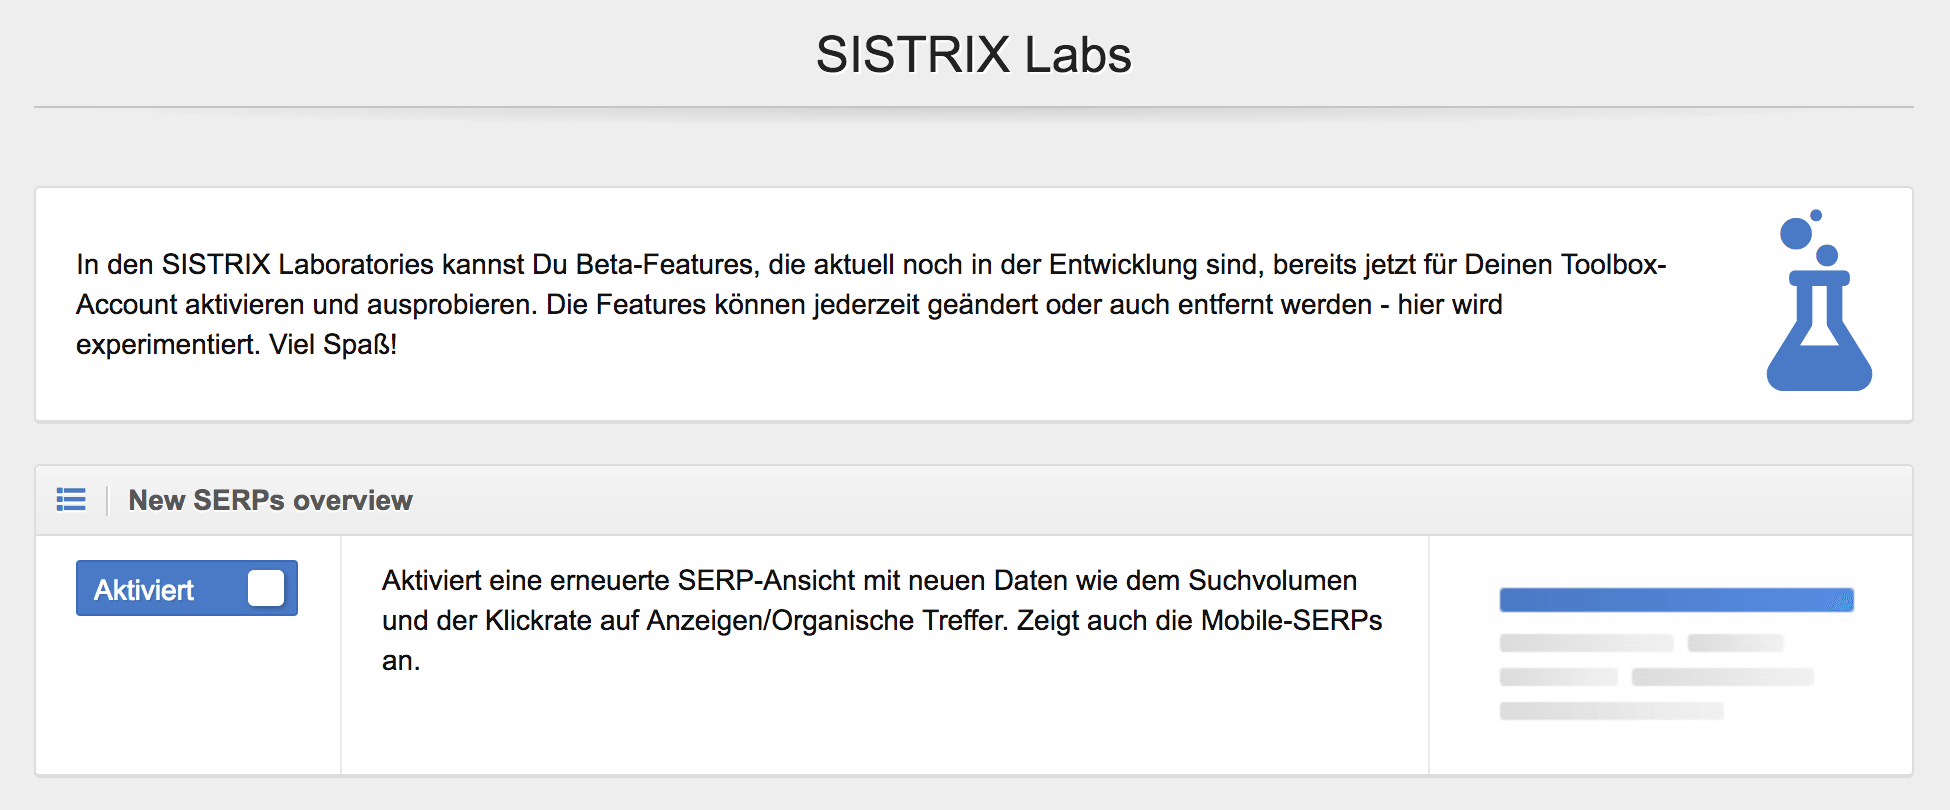 Neuer SERPS-Overview // SISTRIX Labs